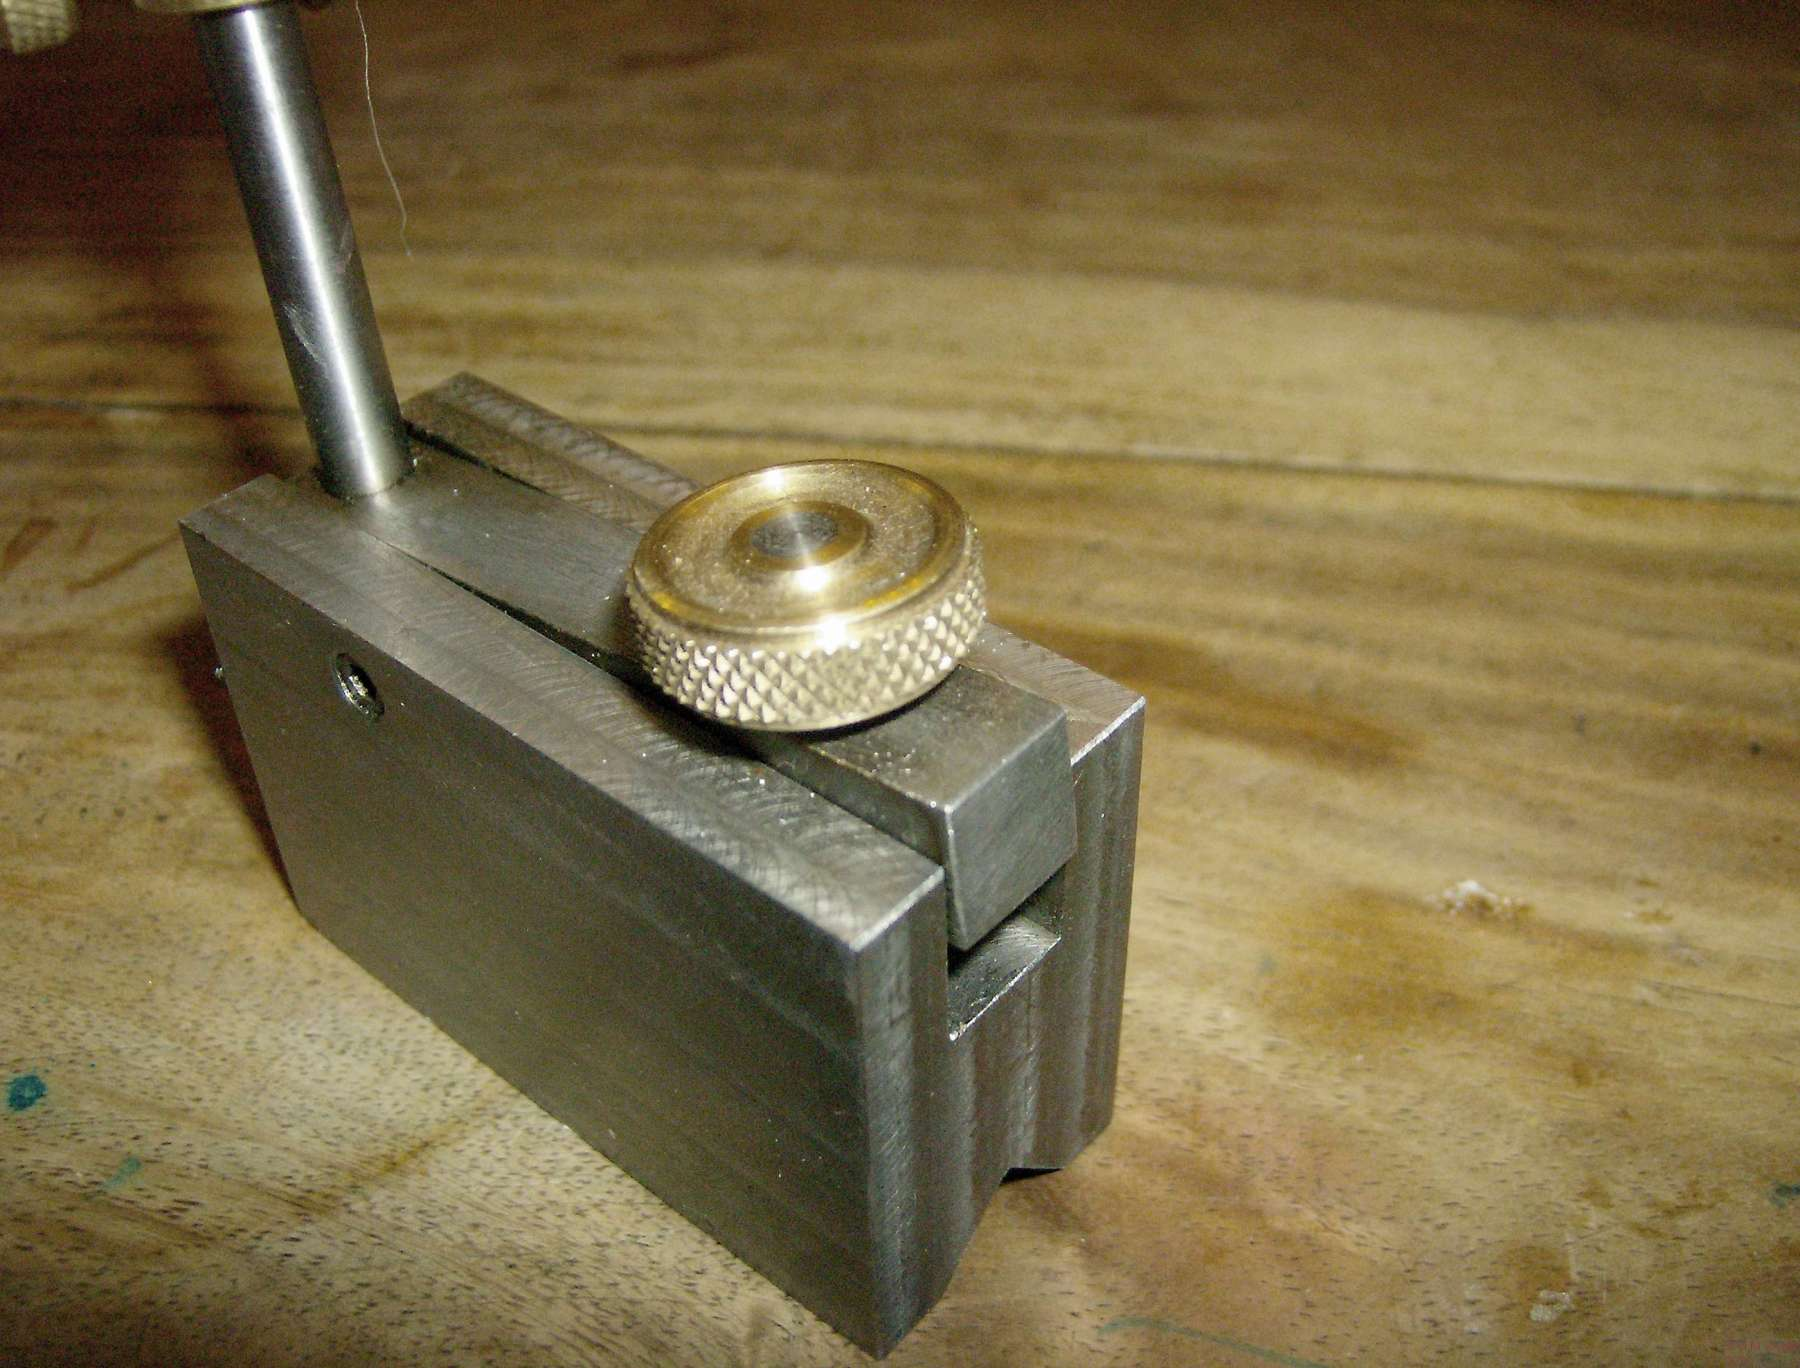 Adjusting screw with knurled nut